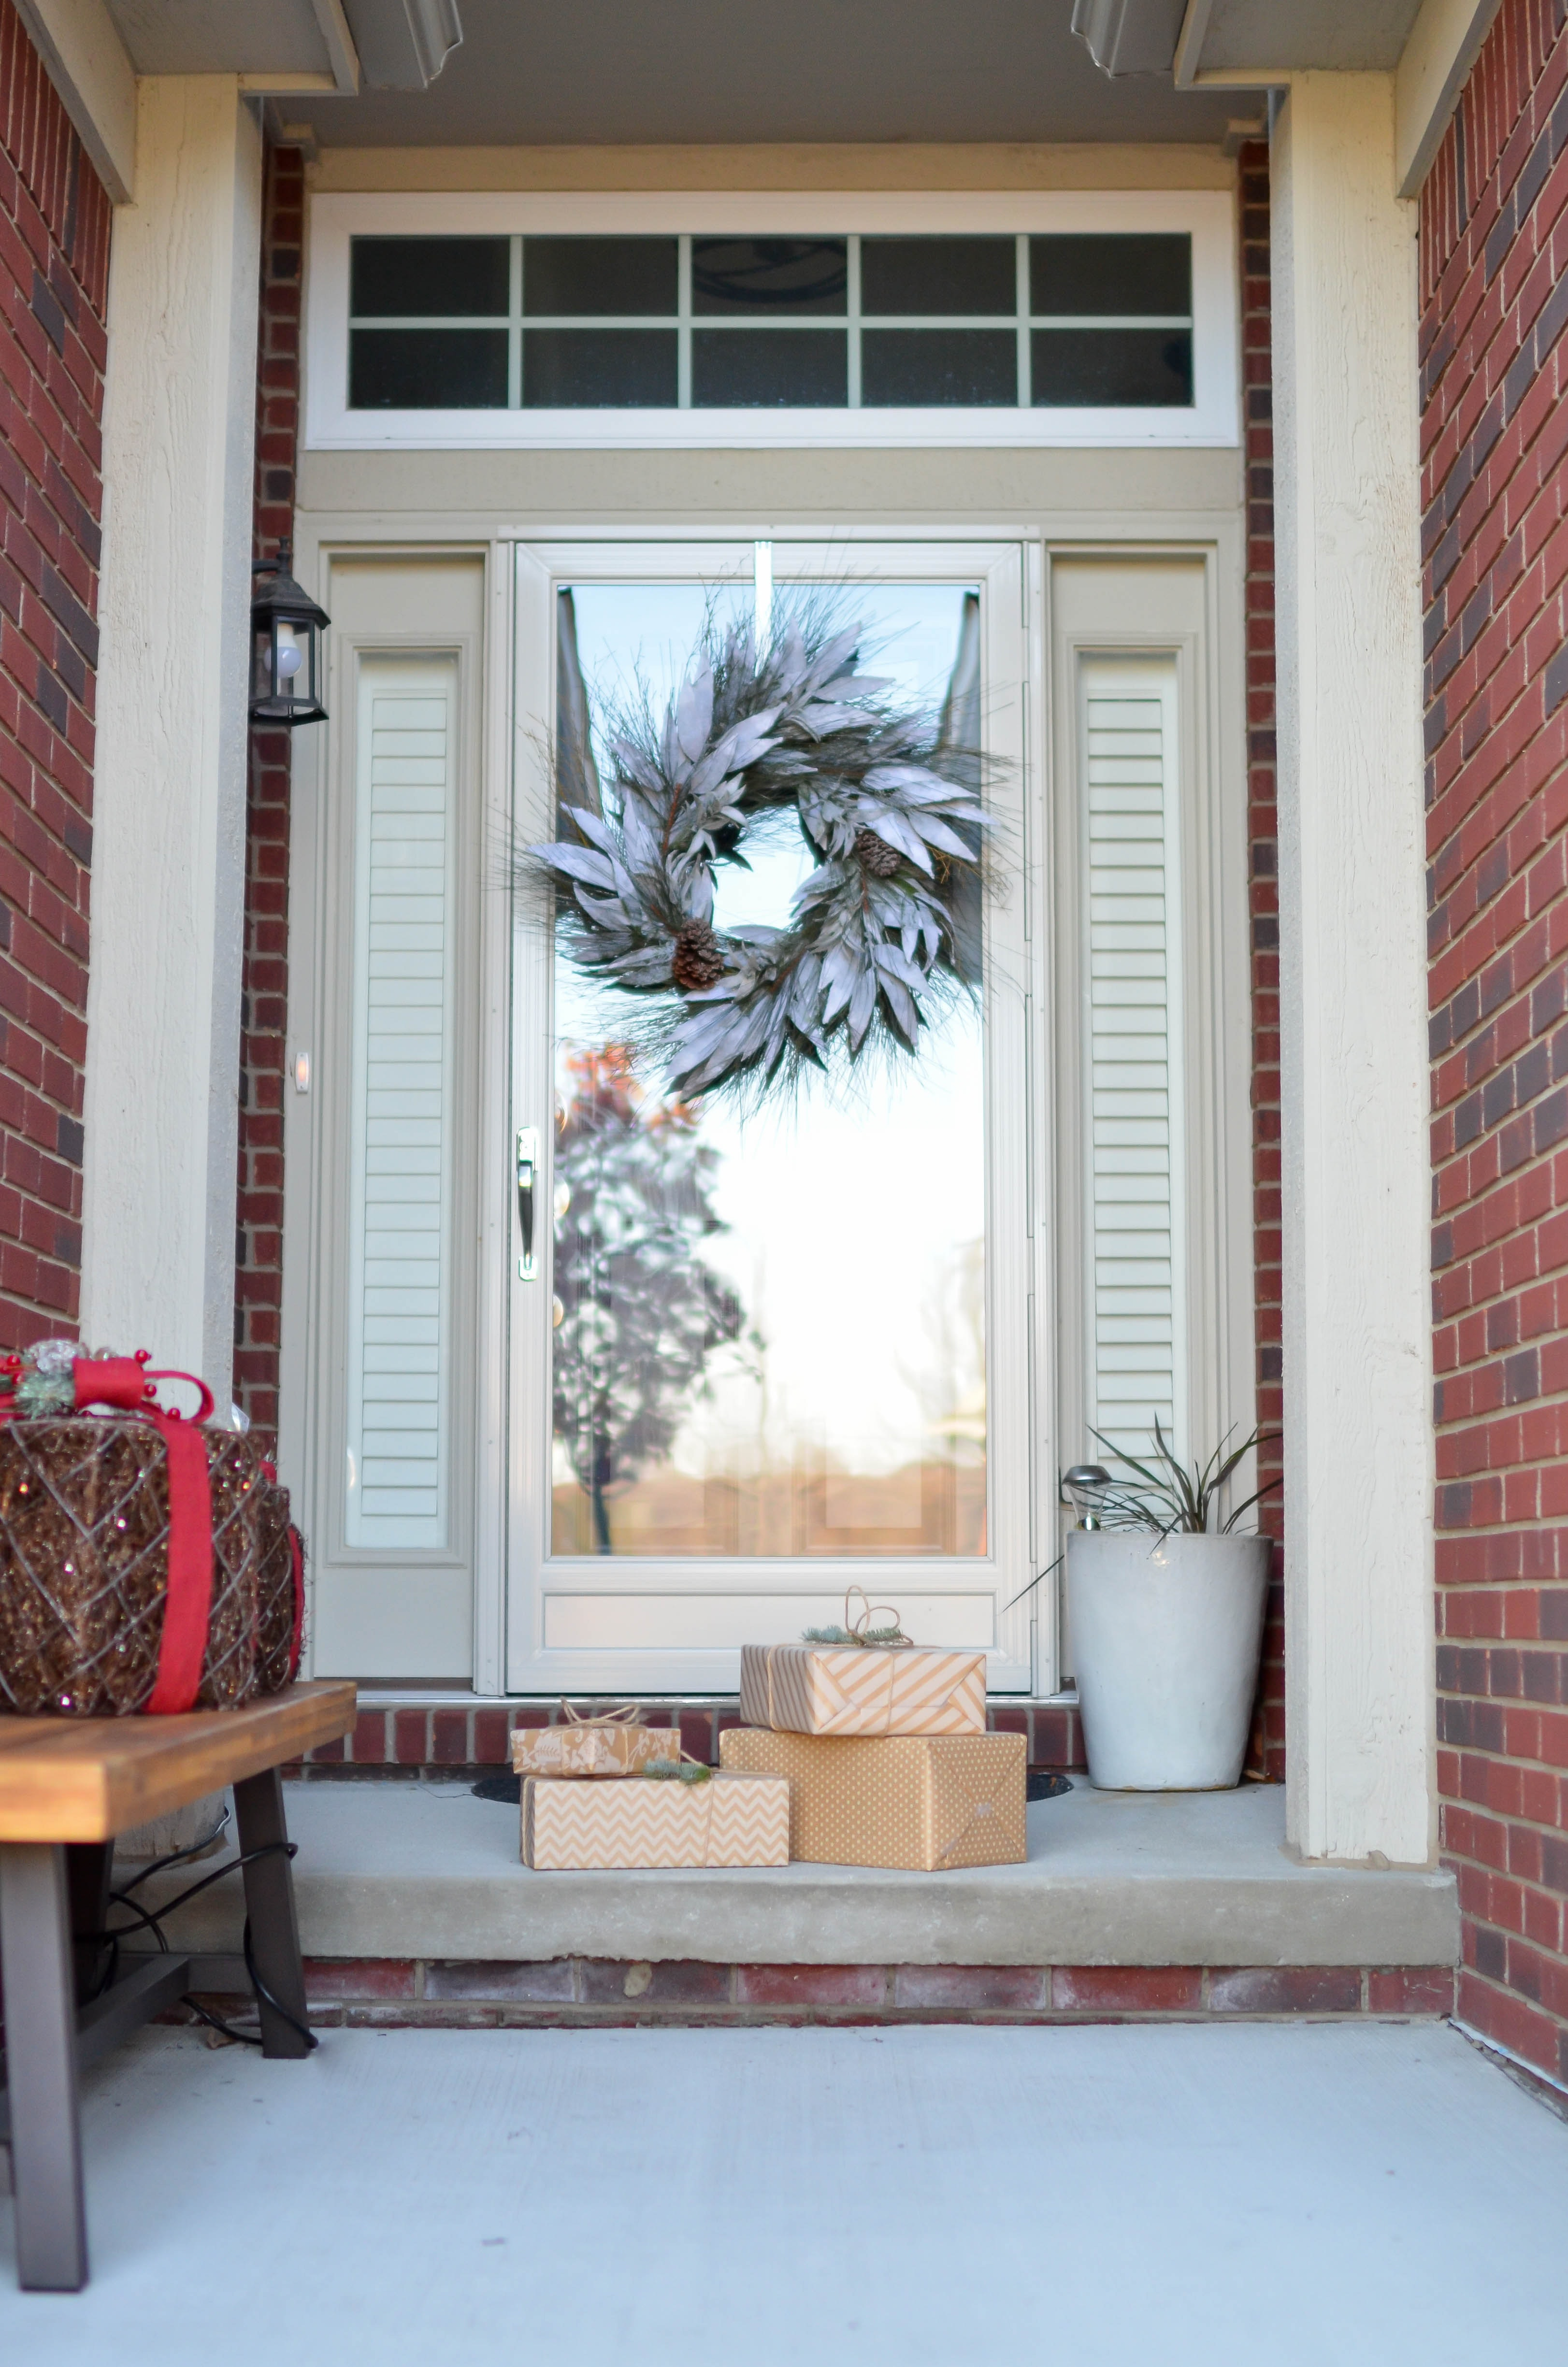 Four brown gift boxes near a glass paneled door with wreath photo